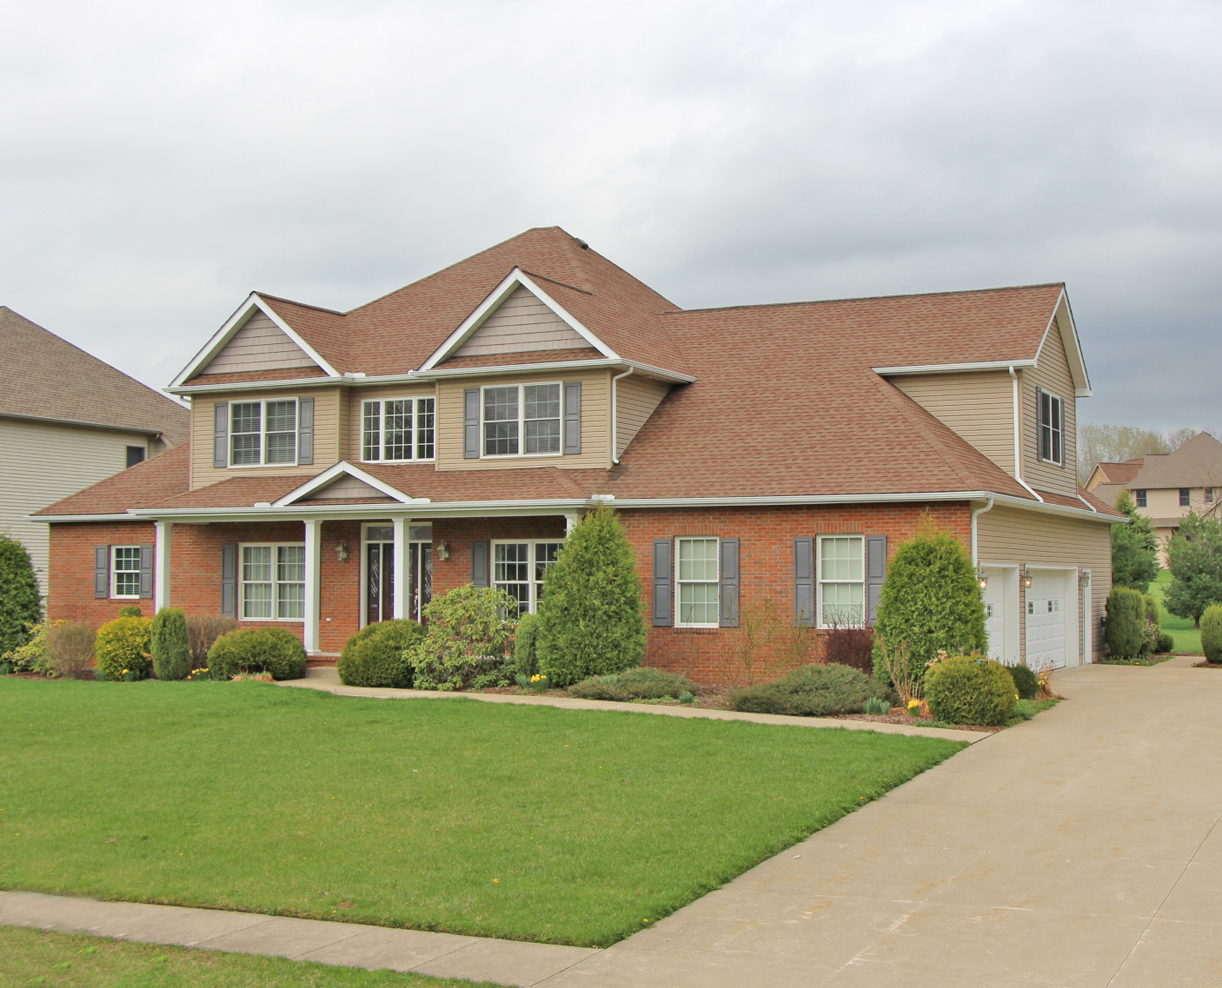 4895 THOROUGHBRED, Millcreek, PA 16506